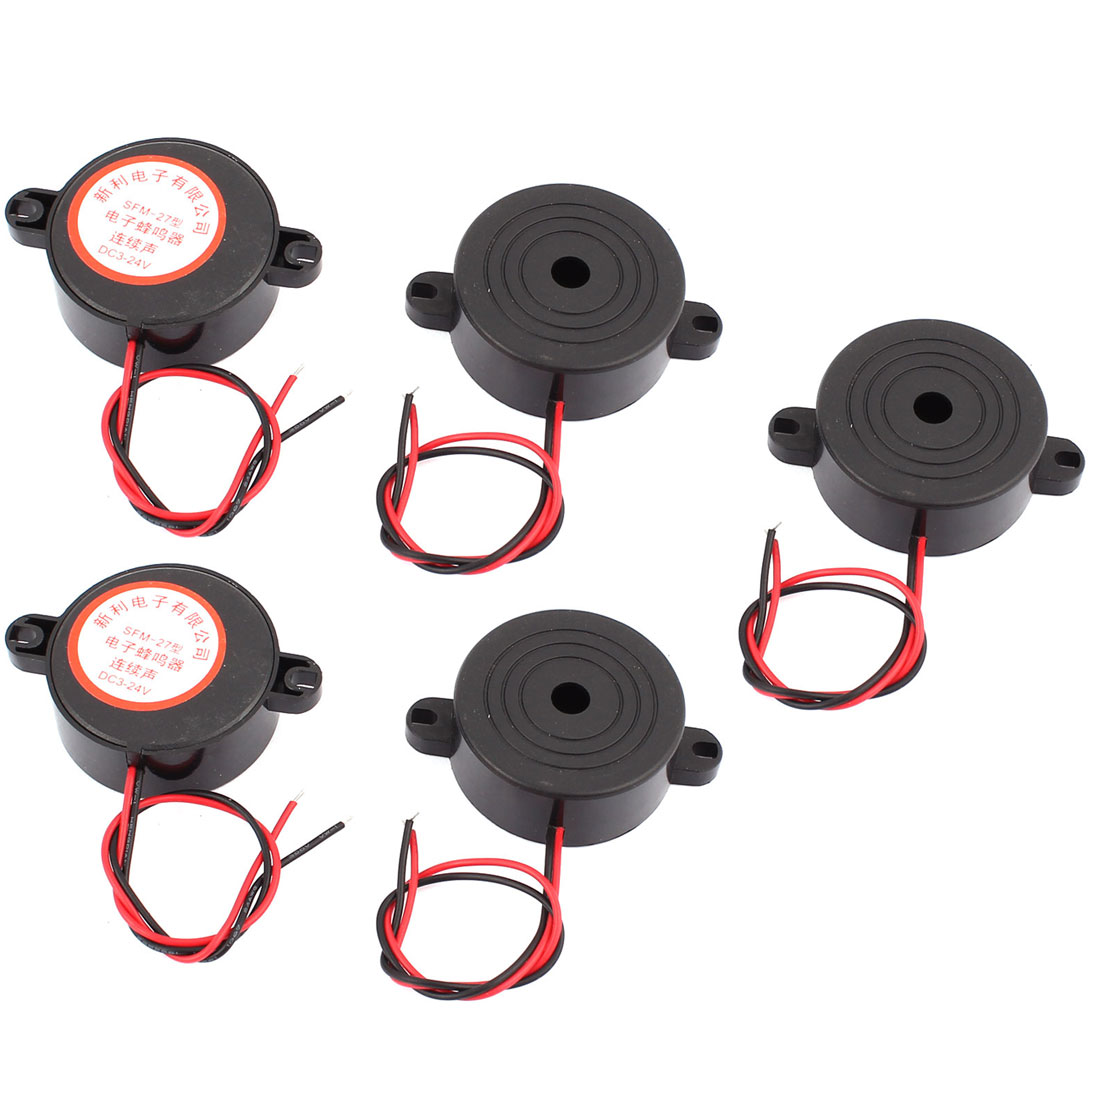 DC 3-24V Wired Industrial Continuous Sound Electronic Buzzer Black 5Pcs